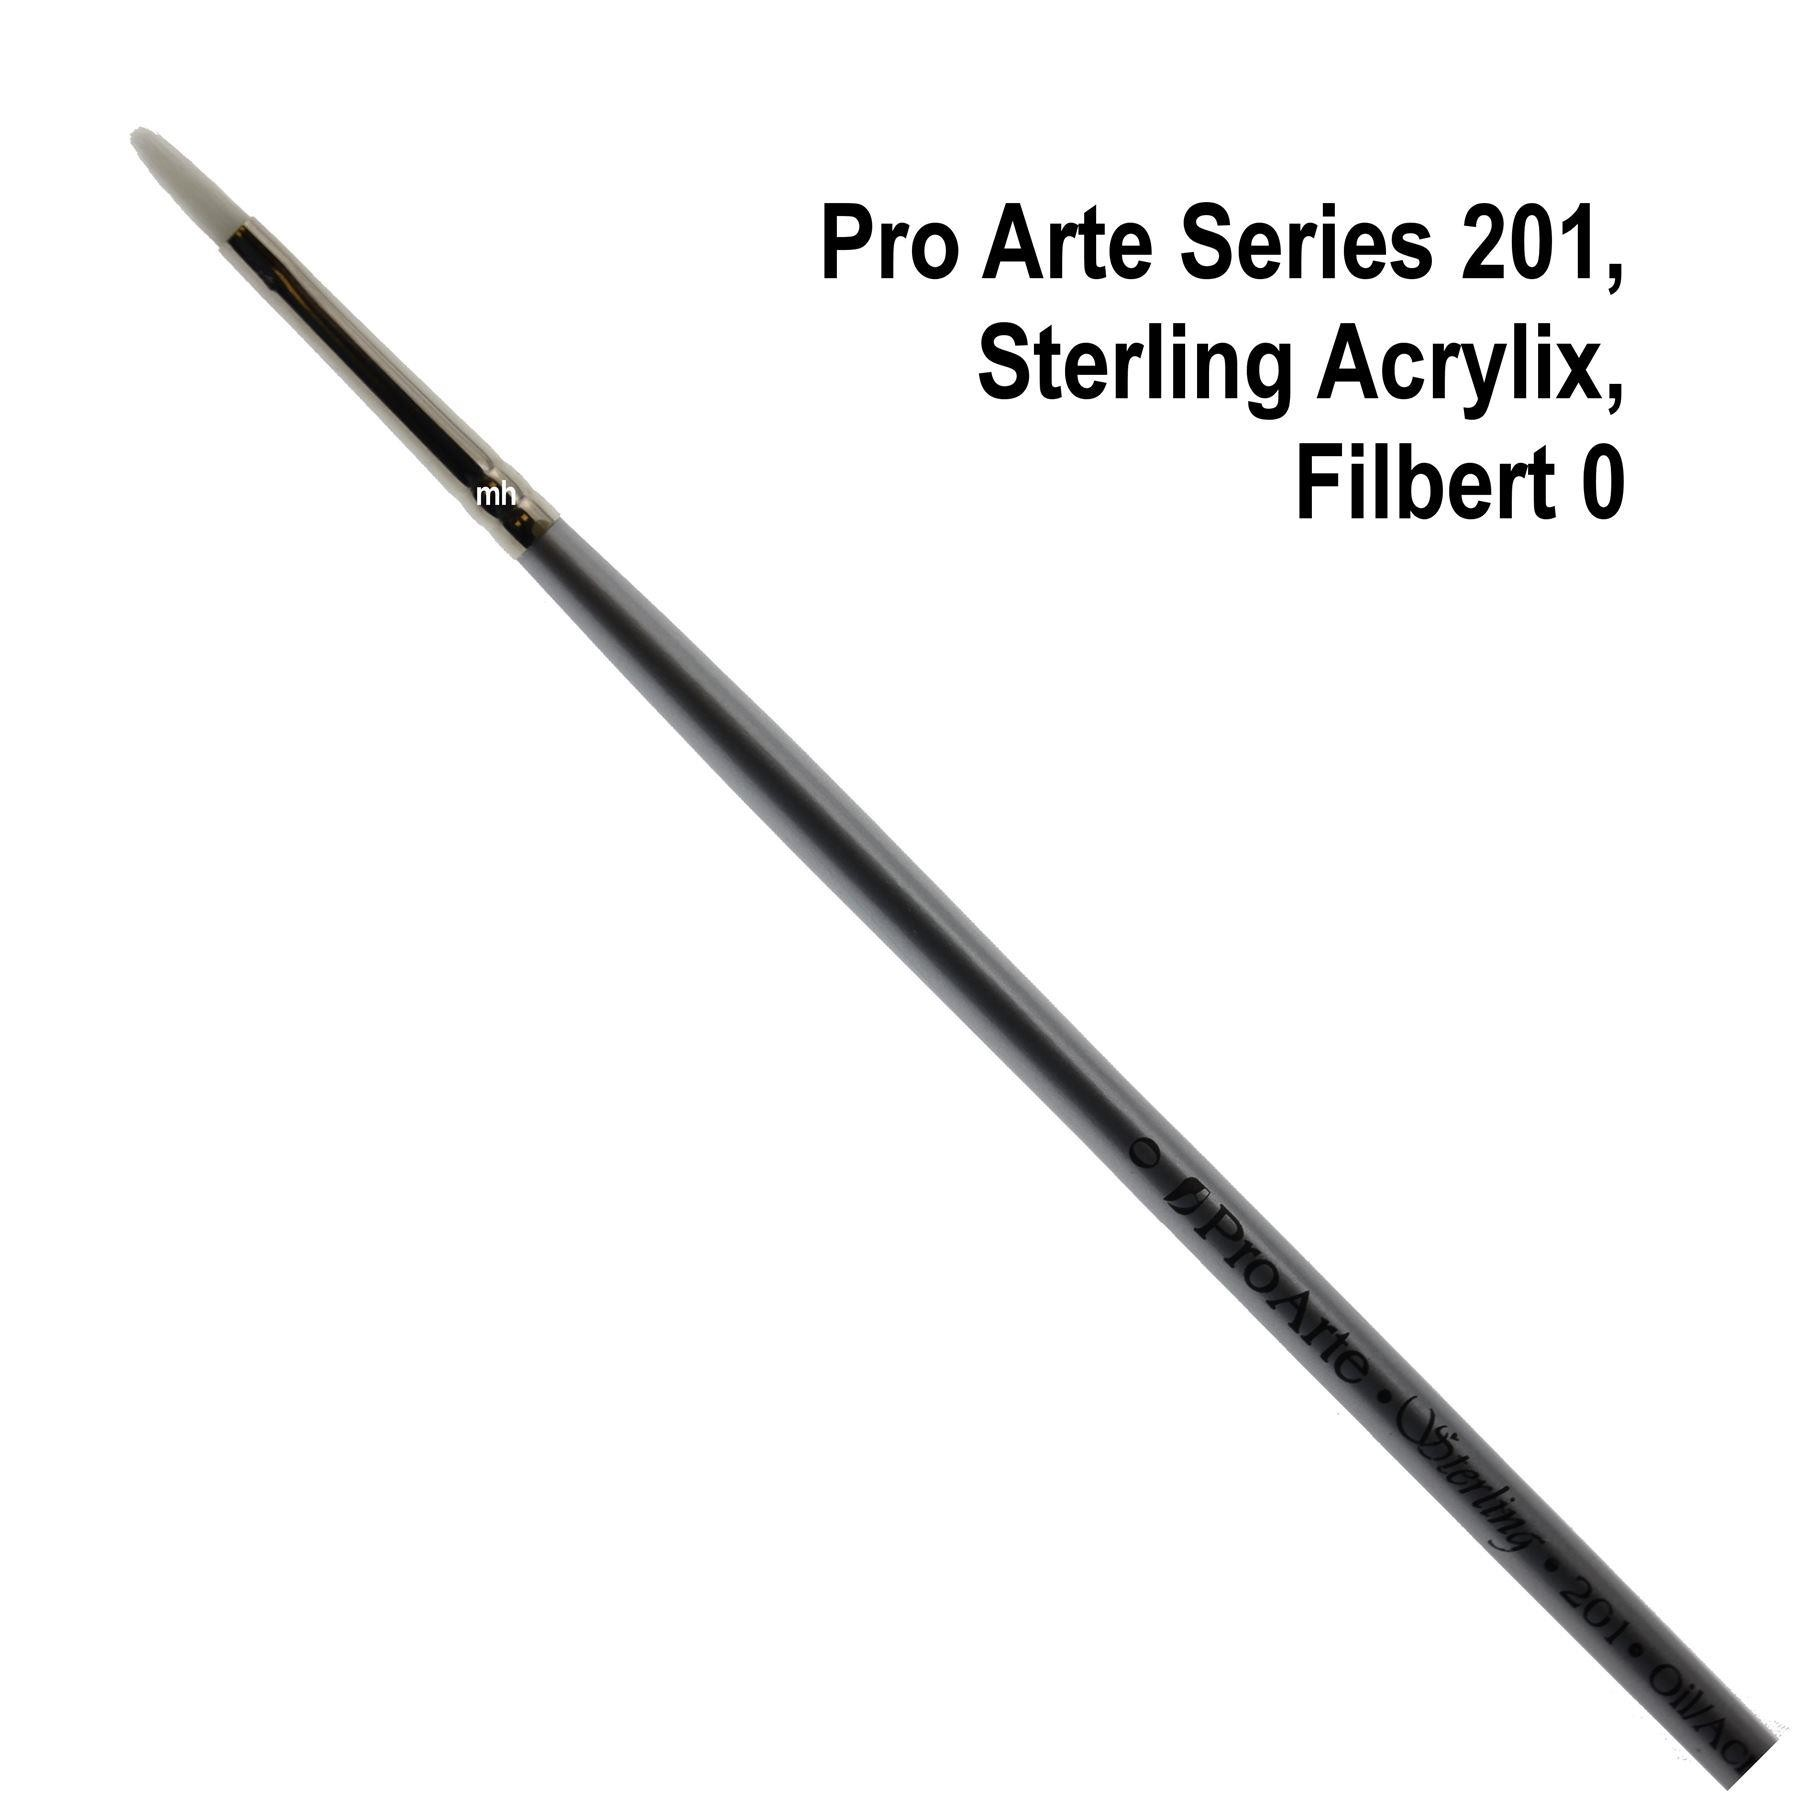 Pro Arte Series 201, Sterling Acrylix Brushes, Filbert Brush - Assorted Sizes